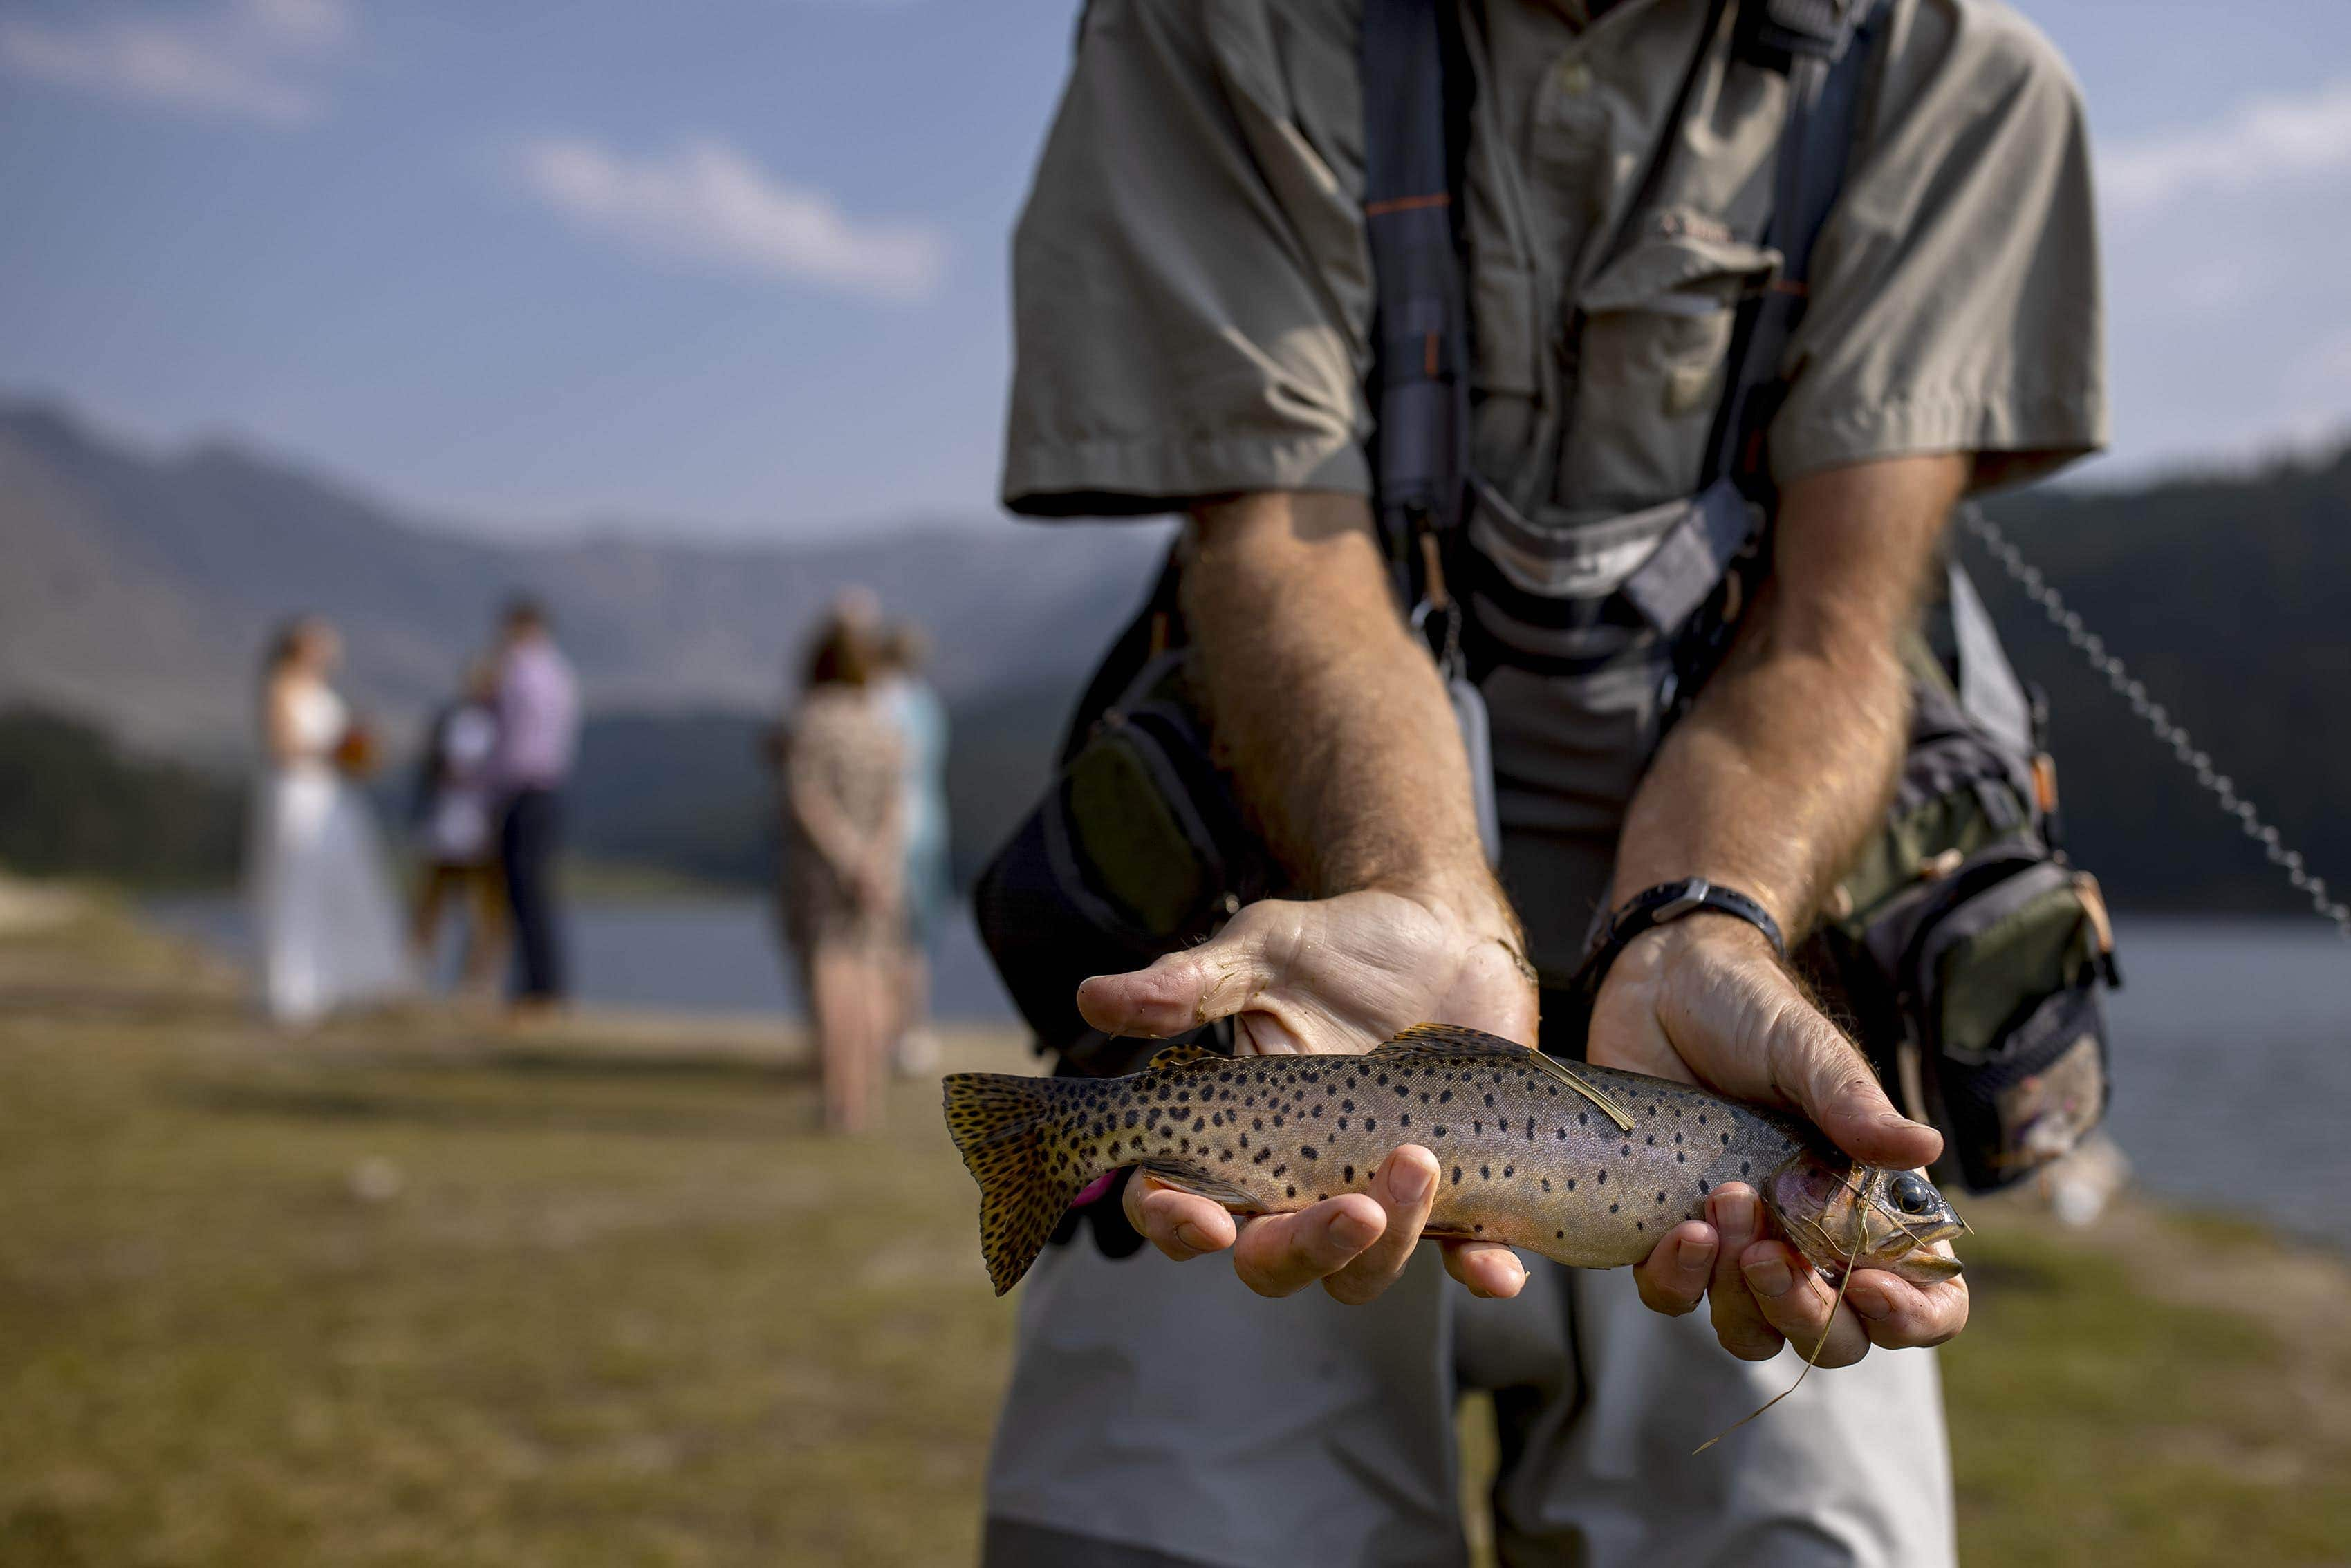 A fisherman holds up a trout near a wedding ceremony